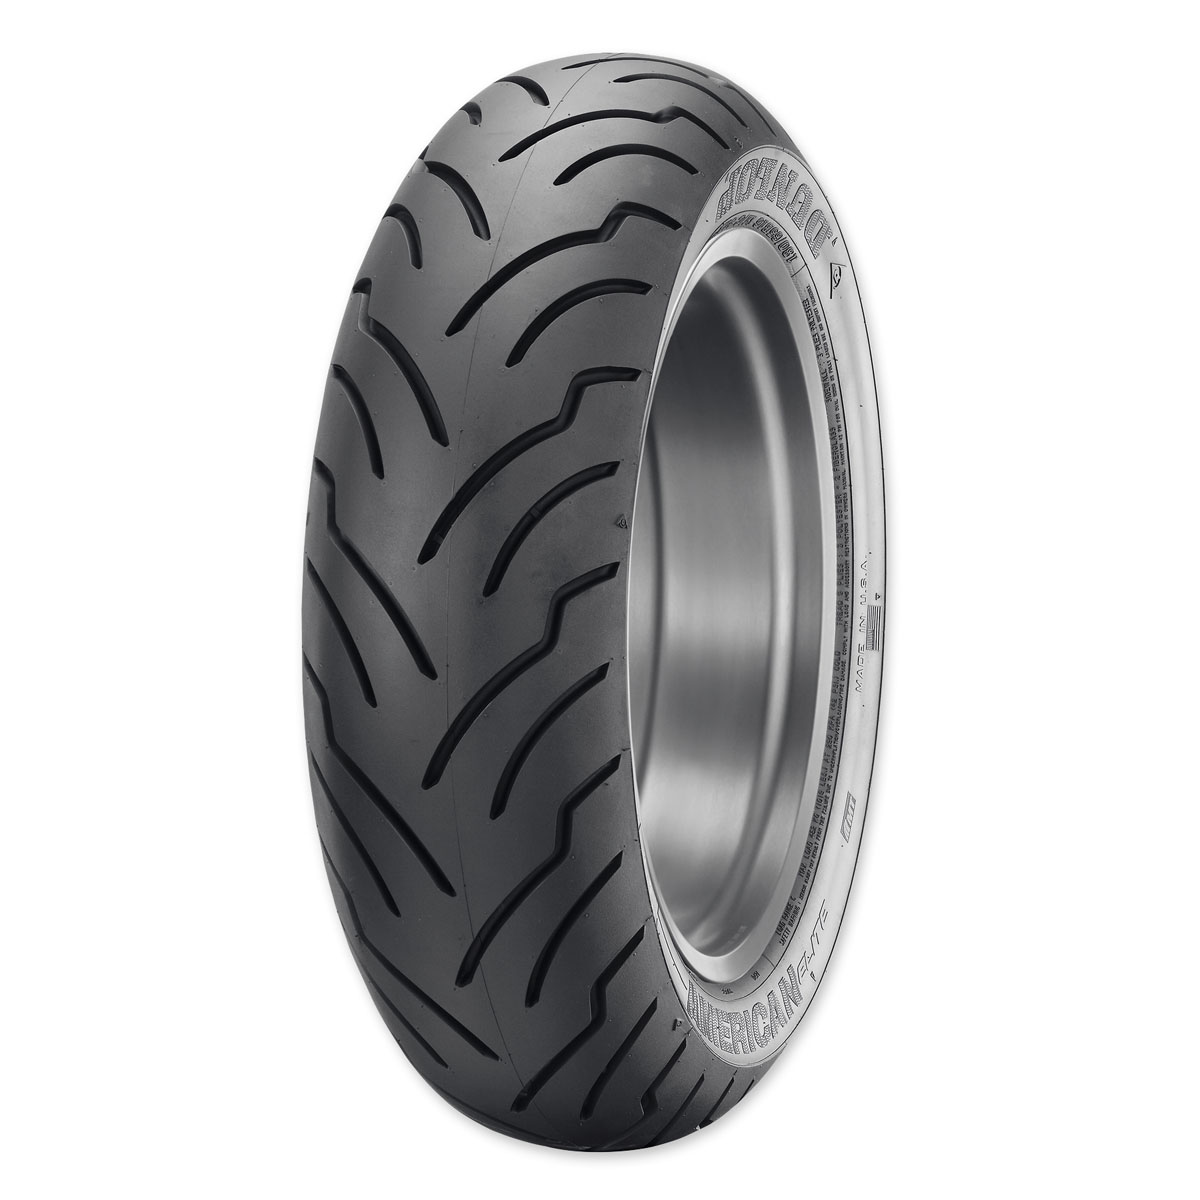 Motorcycle tires save big on tires jp cycles dunlop american elite mt90b16 rear tire geenschuldenfo Image collections